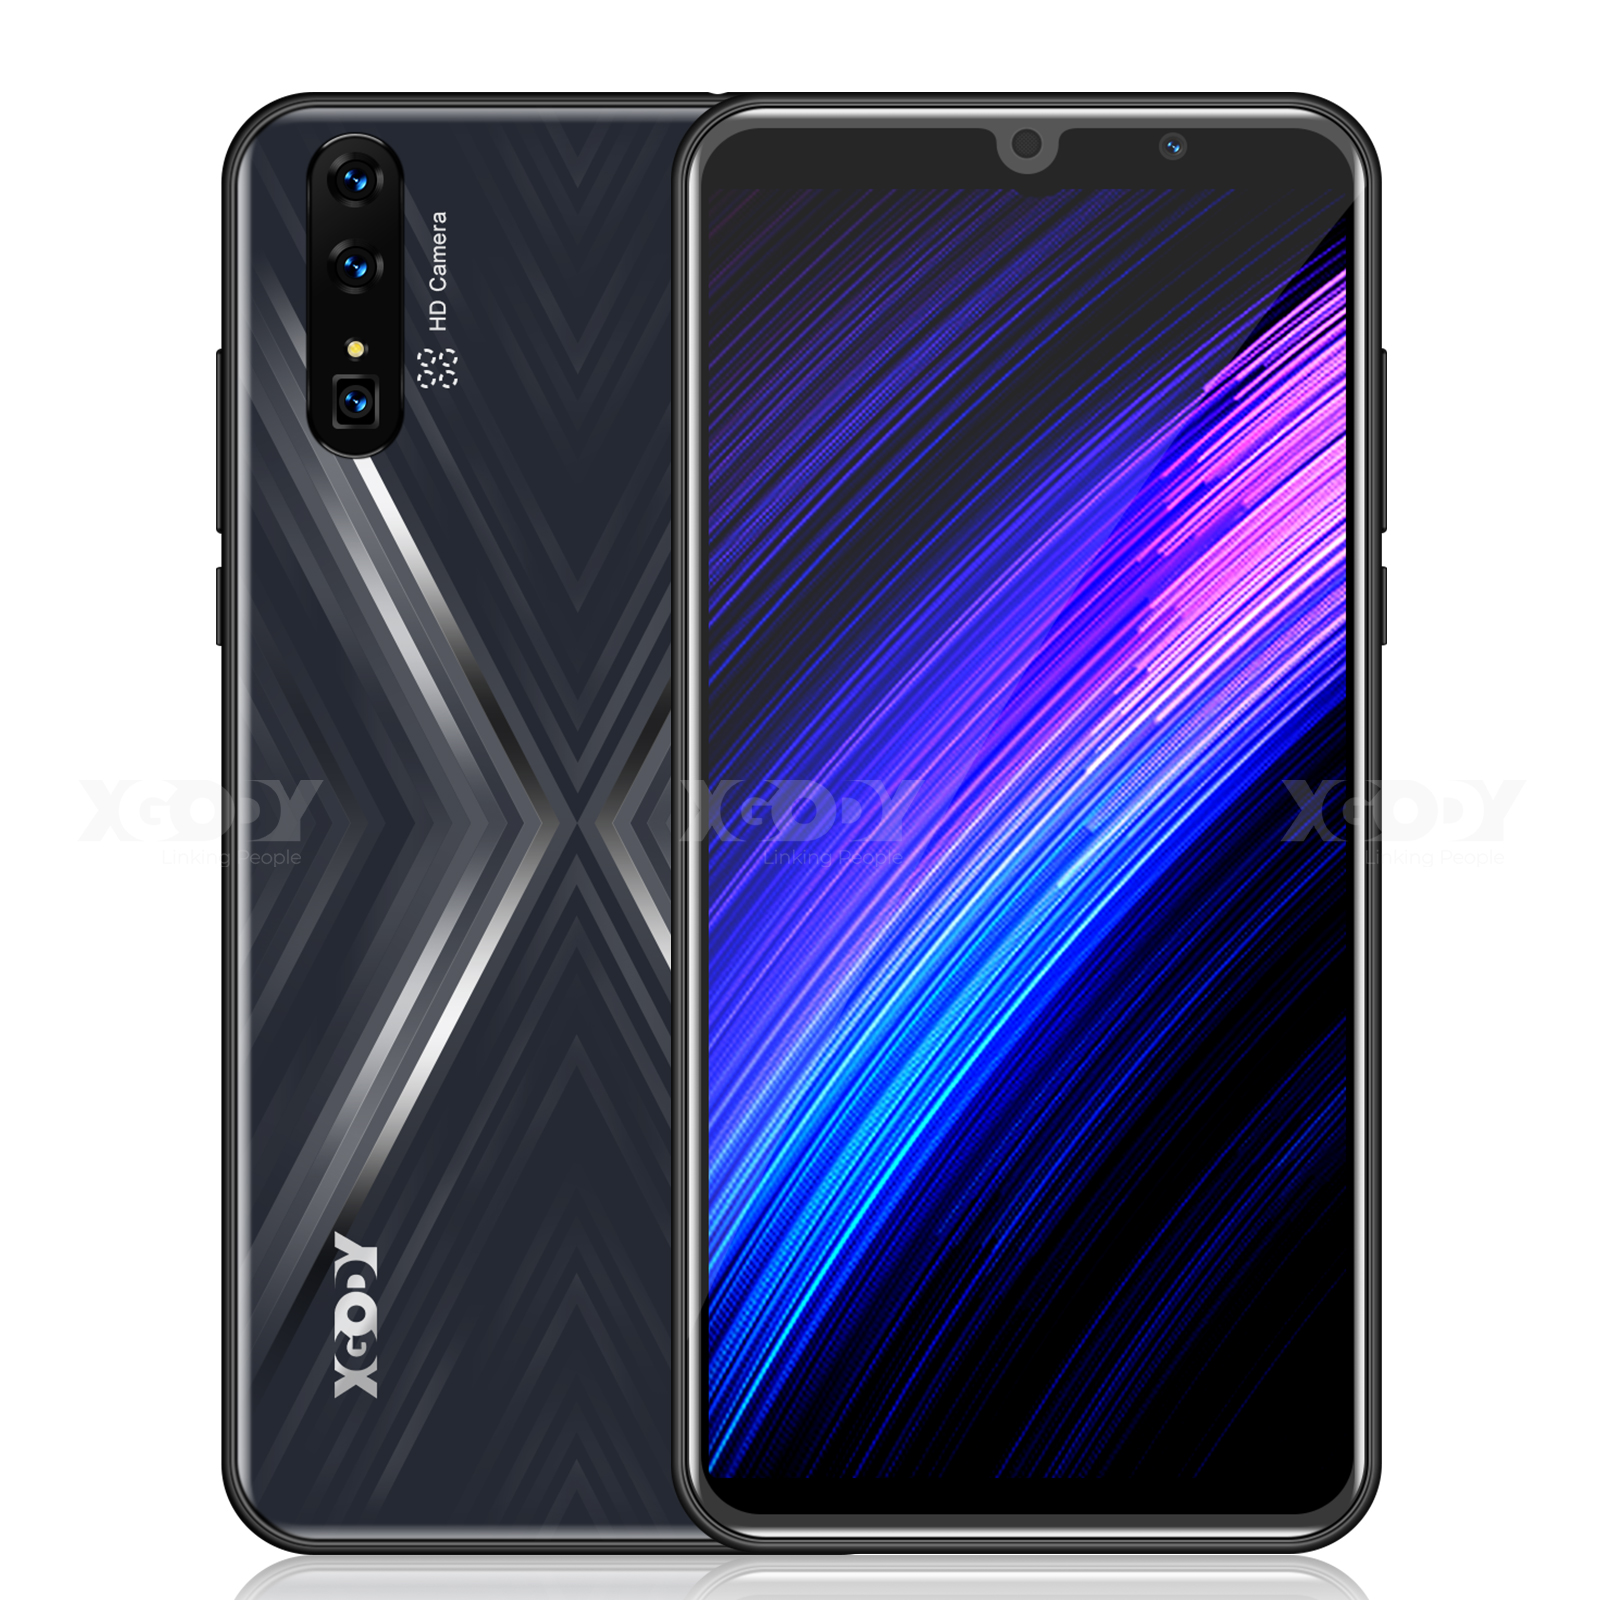 "XGODY MateX 3G Smartphone 6"" Android 9.0 18:9 QHD MTK6580 2GB RAM 16GB ROM 2800mAh Dual SIM 5.0MP Camera GPS WiFi Mobile Phone"